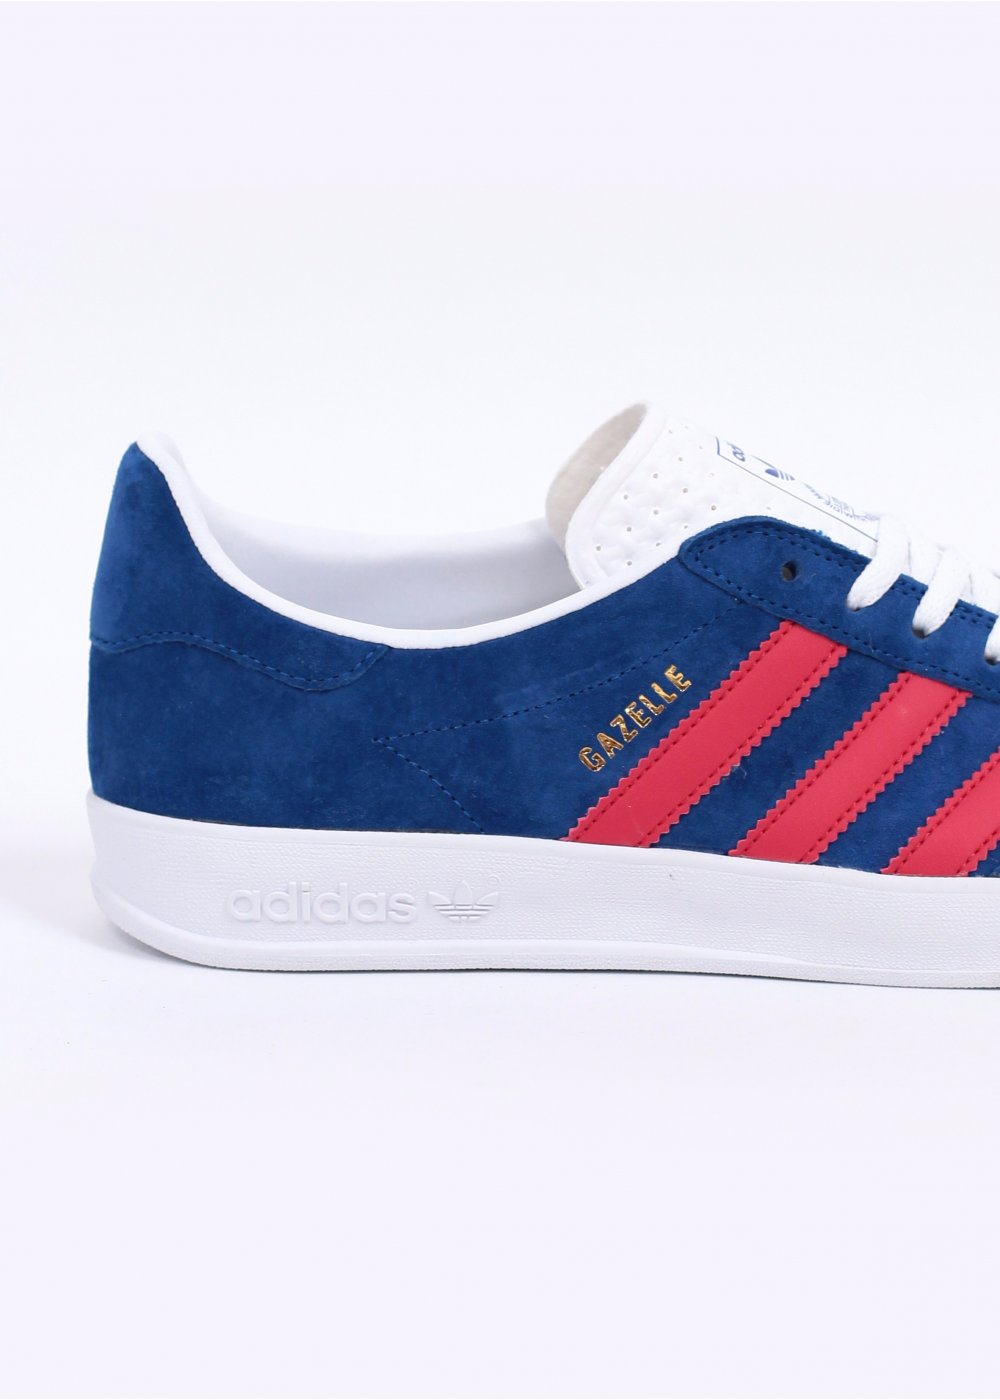 adidas Originals Gazelle Indoor Trainers - Royal Blue   Red 18b57c220709